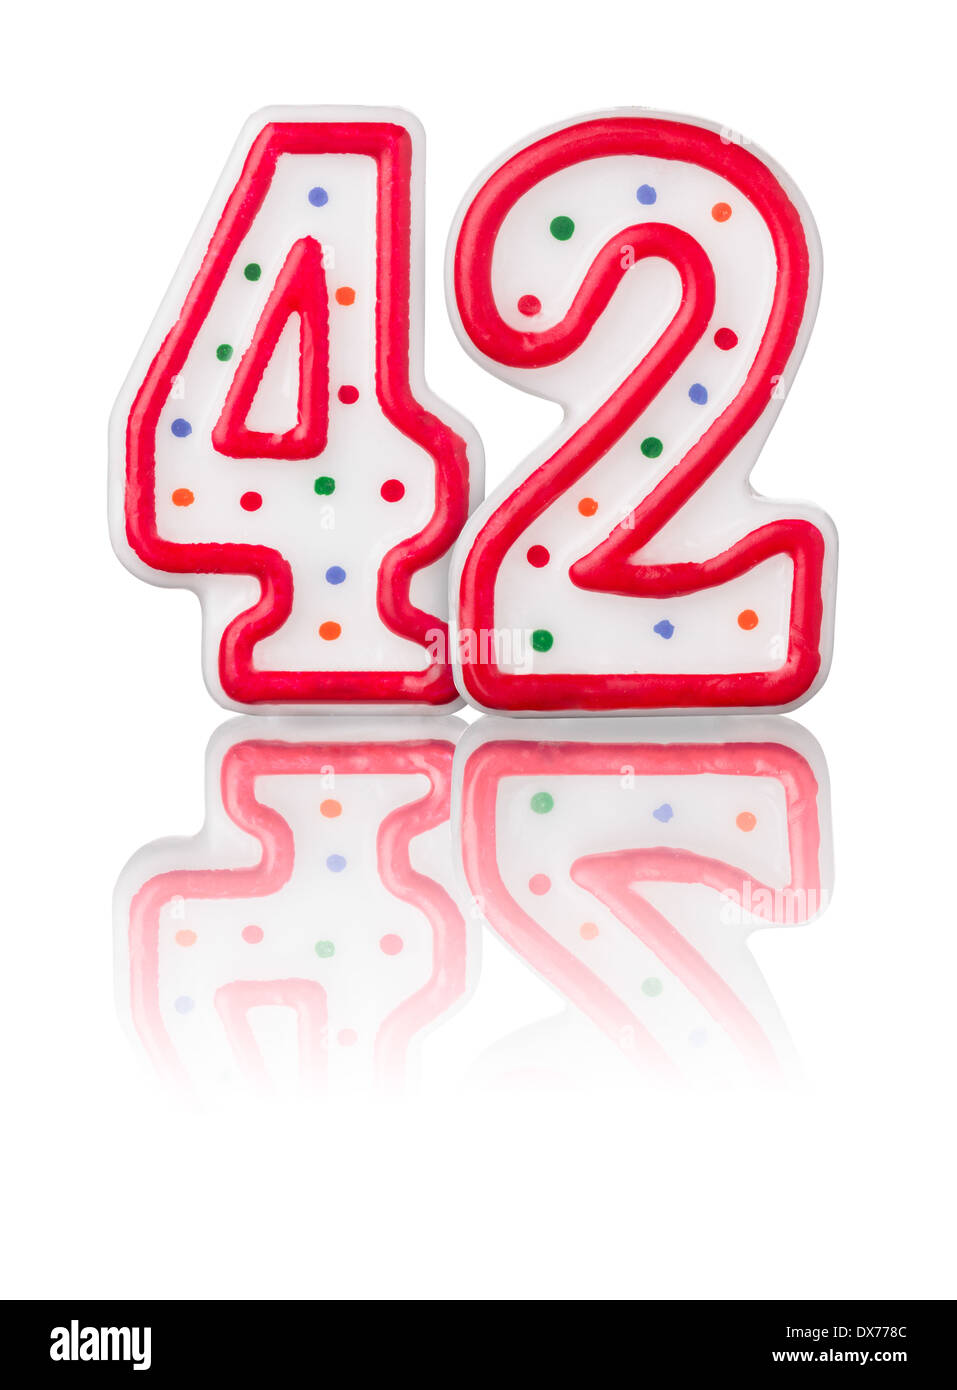 Red number 42 with reflection on a white background - Stock Image